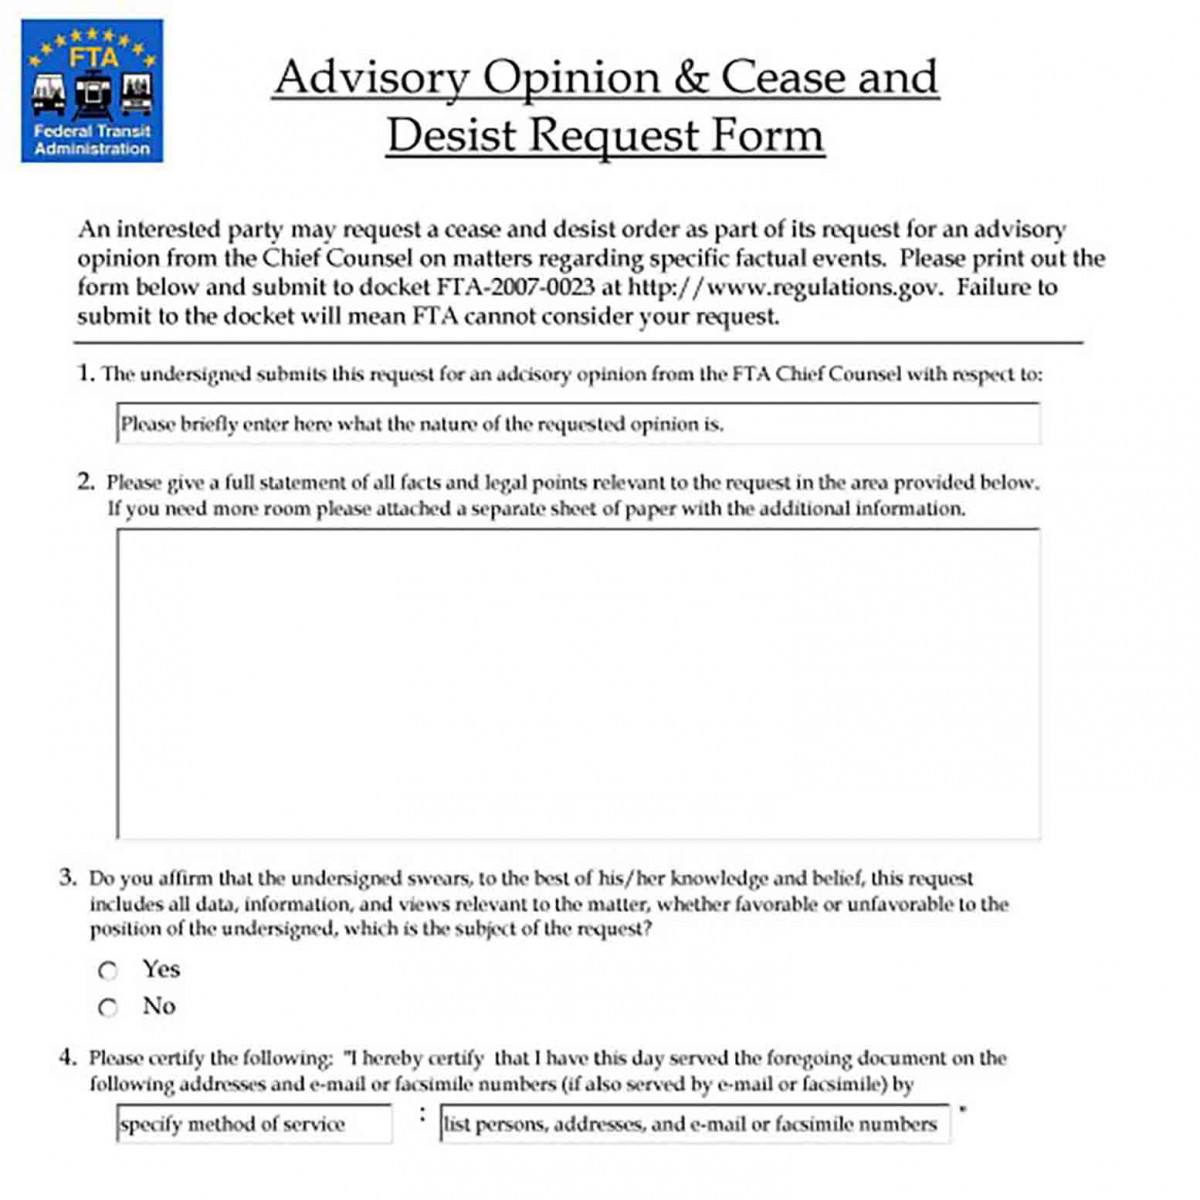 Example of a Cease and Desist Request Form